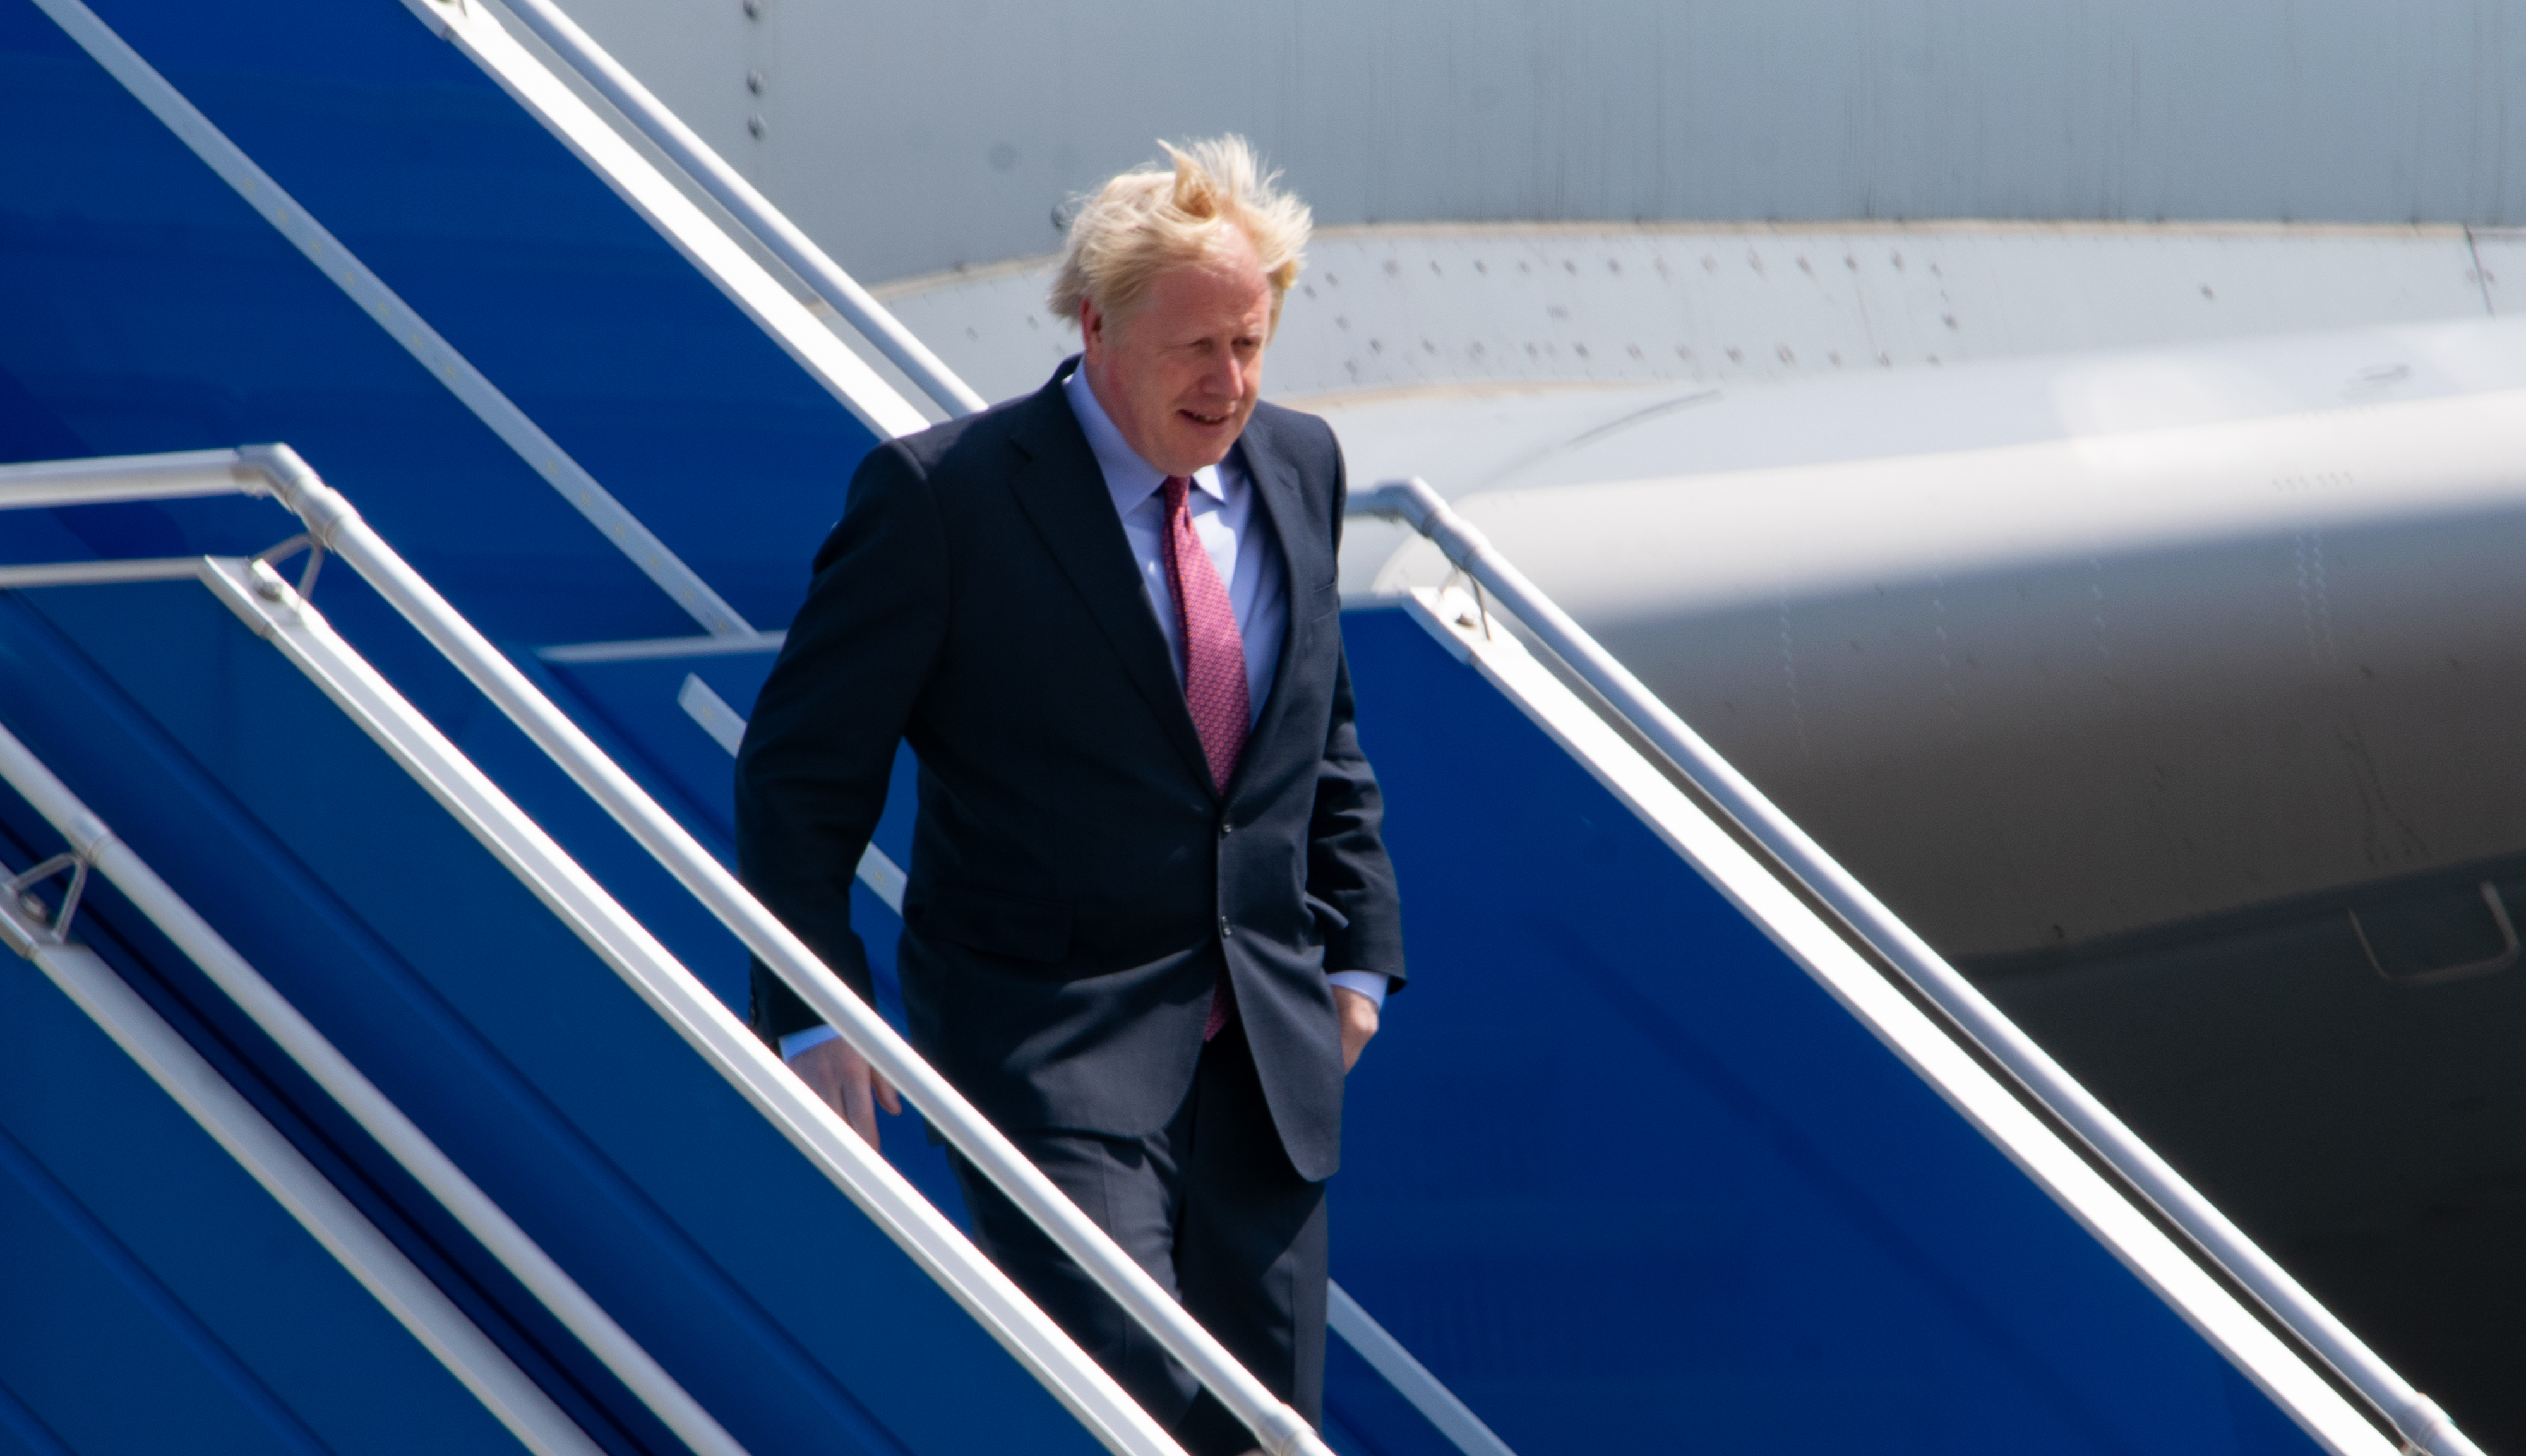 British Prime Minister Boris Johnson disembarks a plane as he arrives as Biarritz Pays Basque Airport for the G7 summit on August 24, 2019 in Biarritz, France. The French southwestern seaside resort of Biarritz is hosting the 45th G7 summit from August 24 to 26. High on the agenda will be the climate emergency, the US-China trade war, Britain's departure from the EU, and emergency talks on the Amazon wildfire crisis.(Photo by Adrià Salido Zarco/NurPhoto via Getty Images)